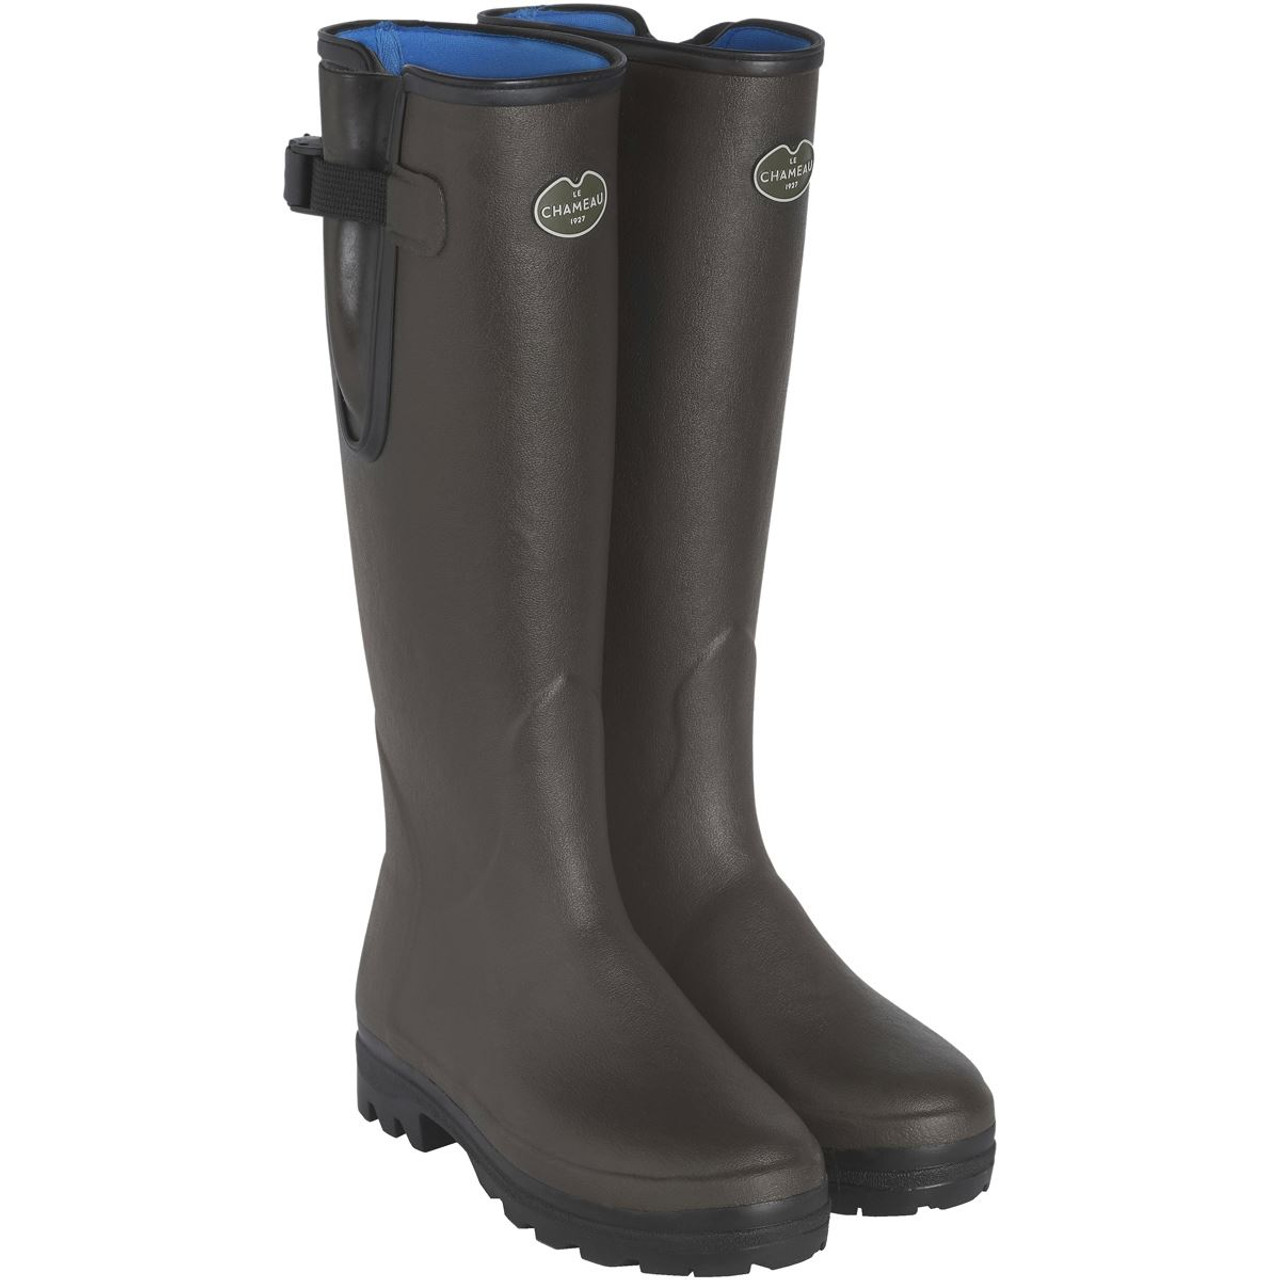 Marrron Le Chameau Ladies Vierzonord Neoprene Lined Wellington Boots